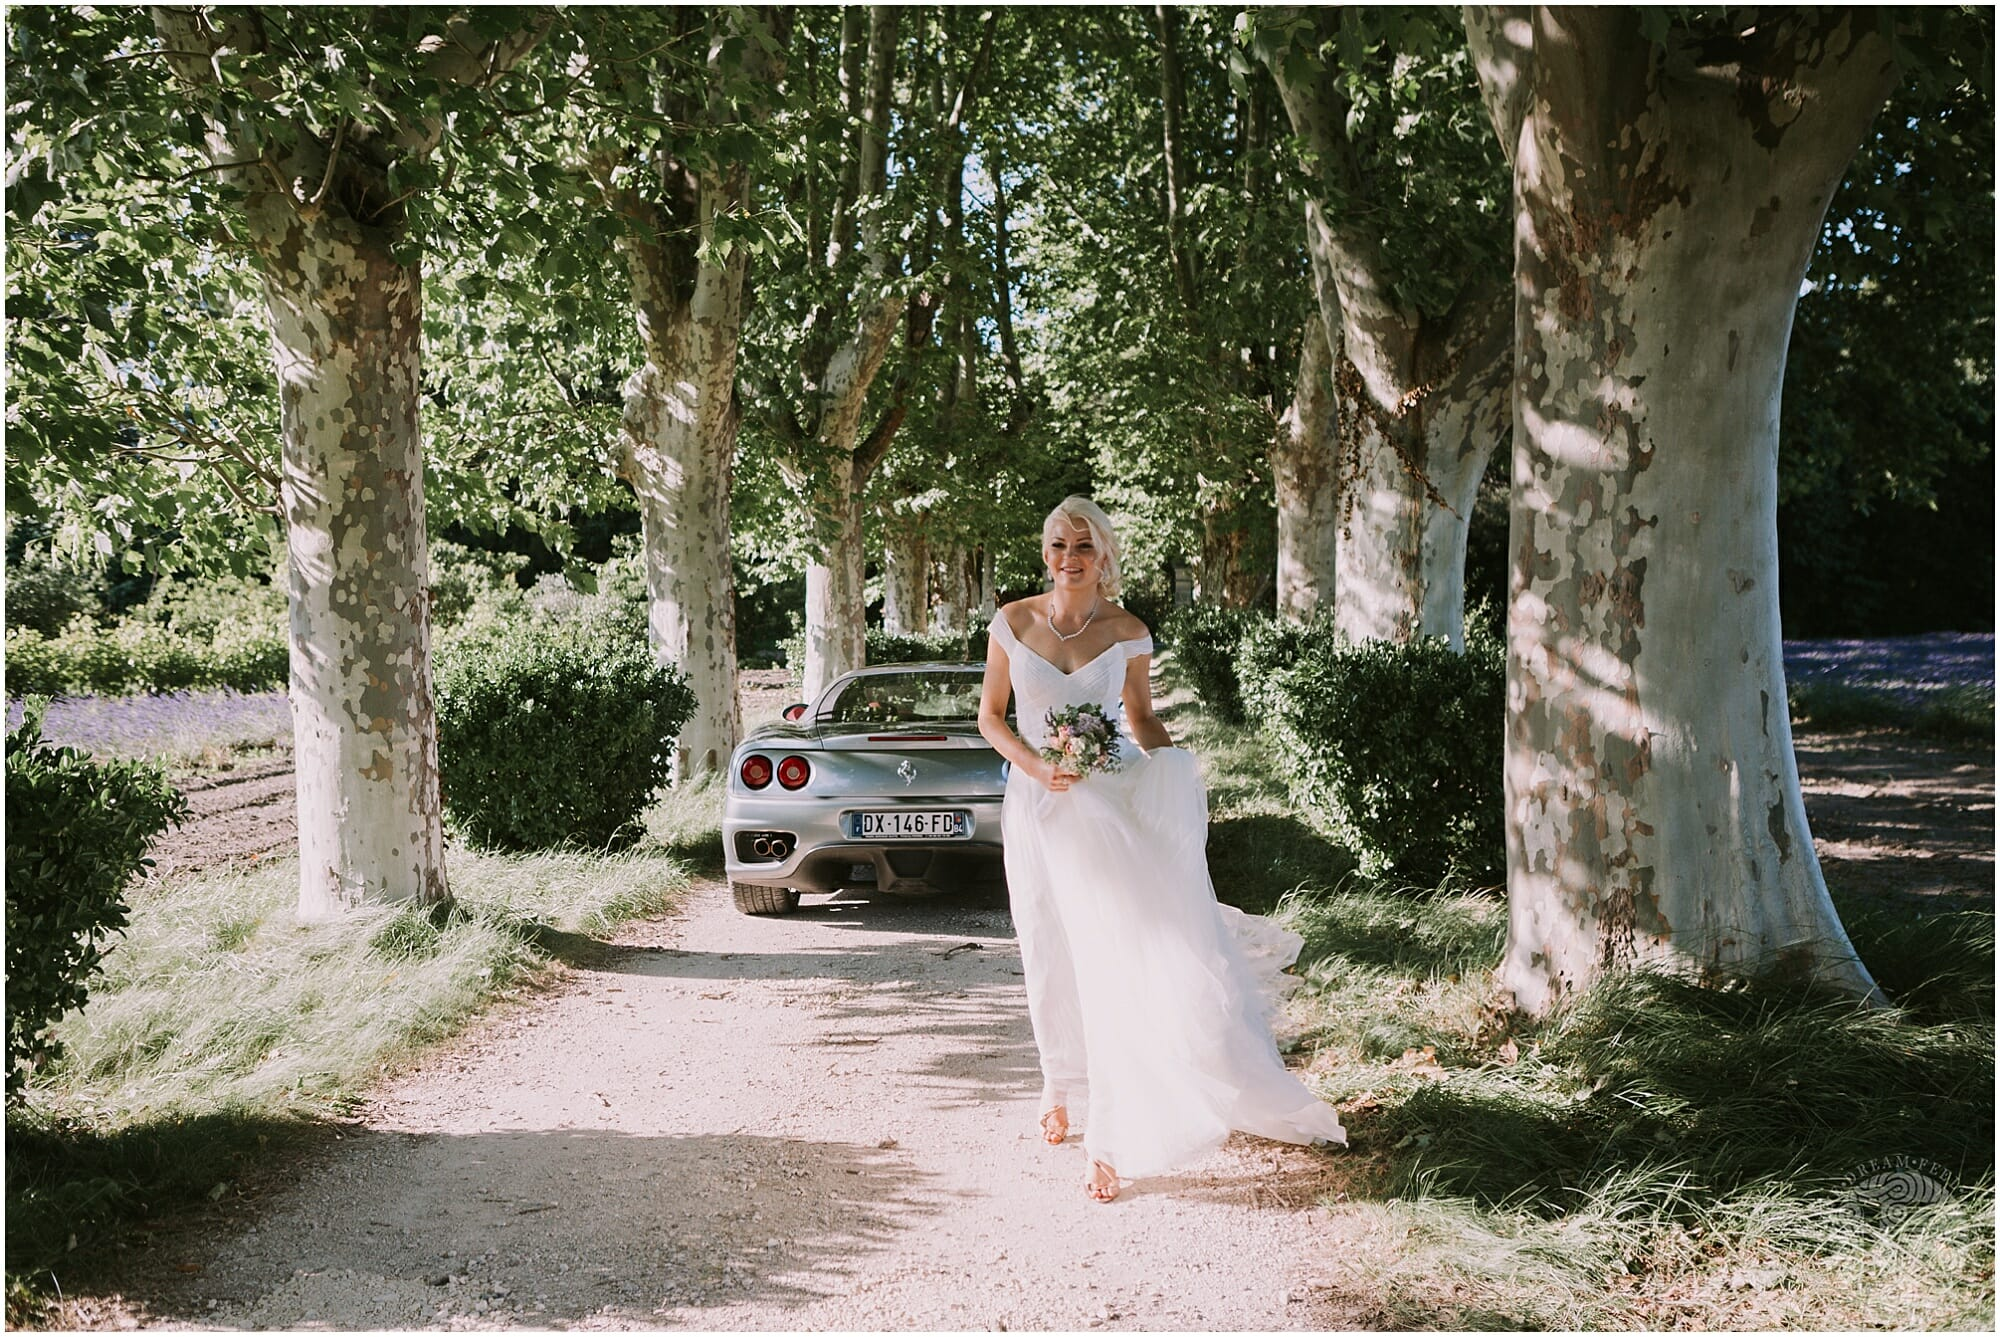 Kateryna-photos-photographe-mariage-chateau-des-3-fontaines-provence-avignon-vaucluse-sud_0087.jpg